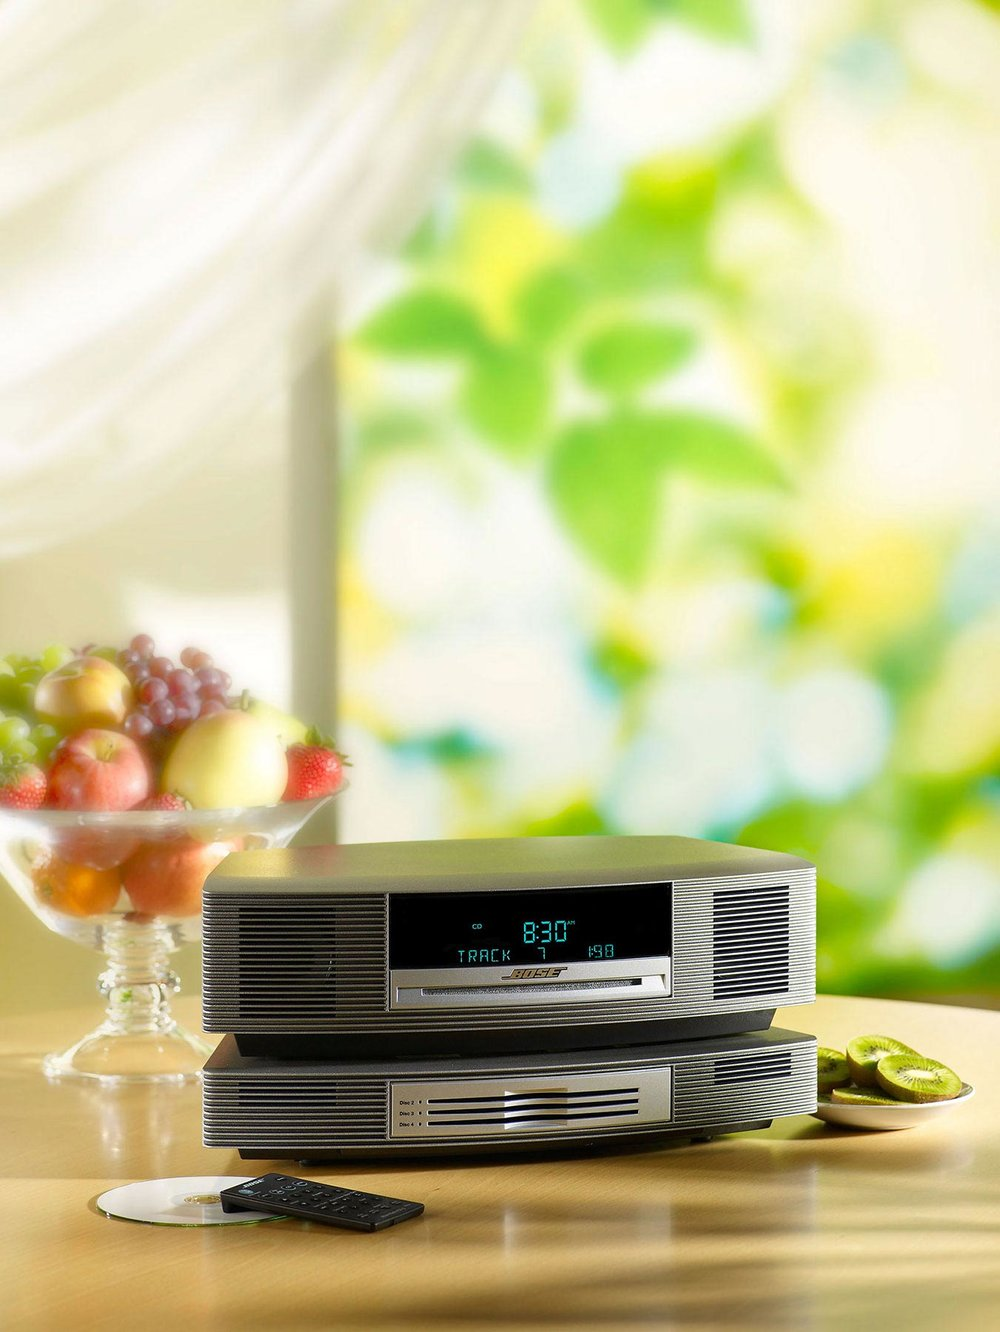 bose-radio-w-cd-and-summerfruit.jpg